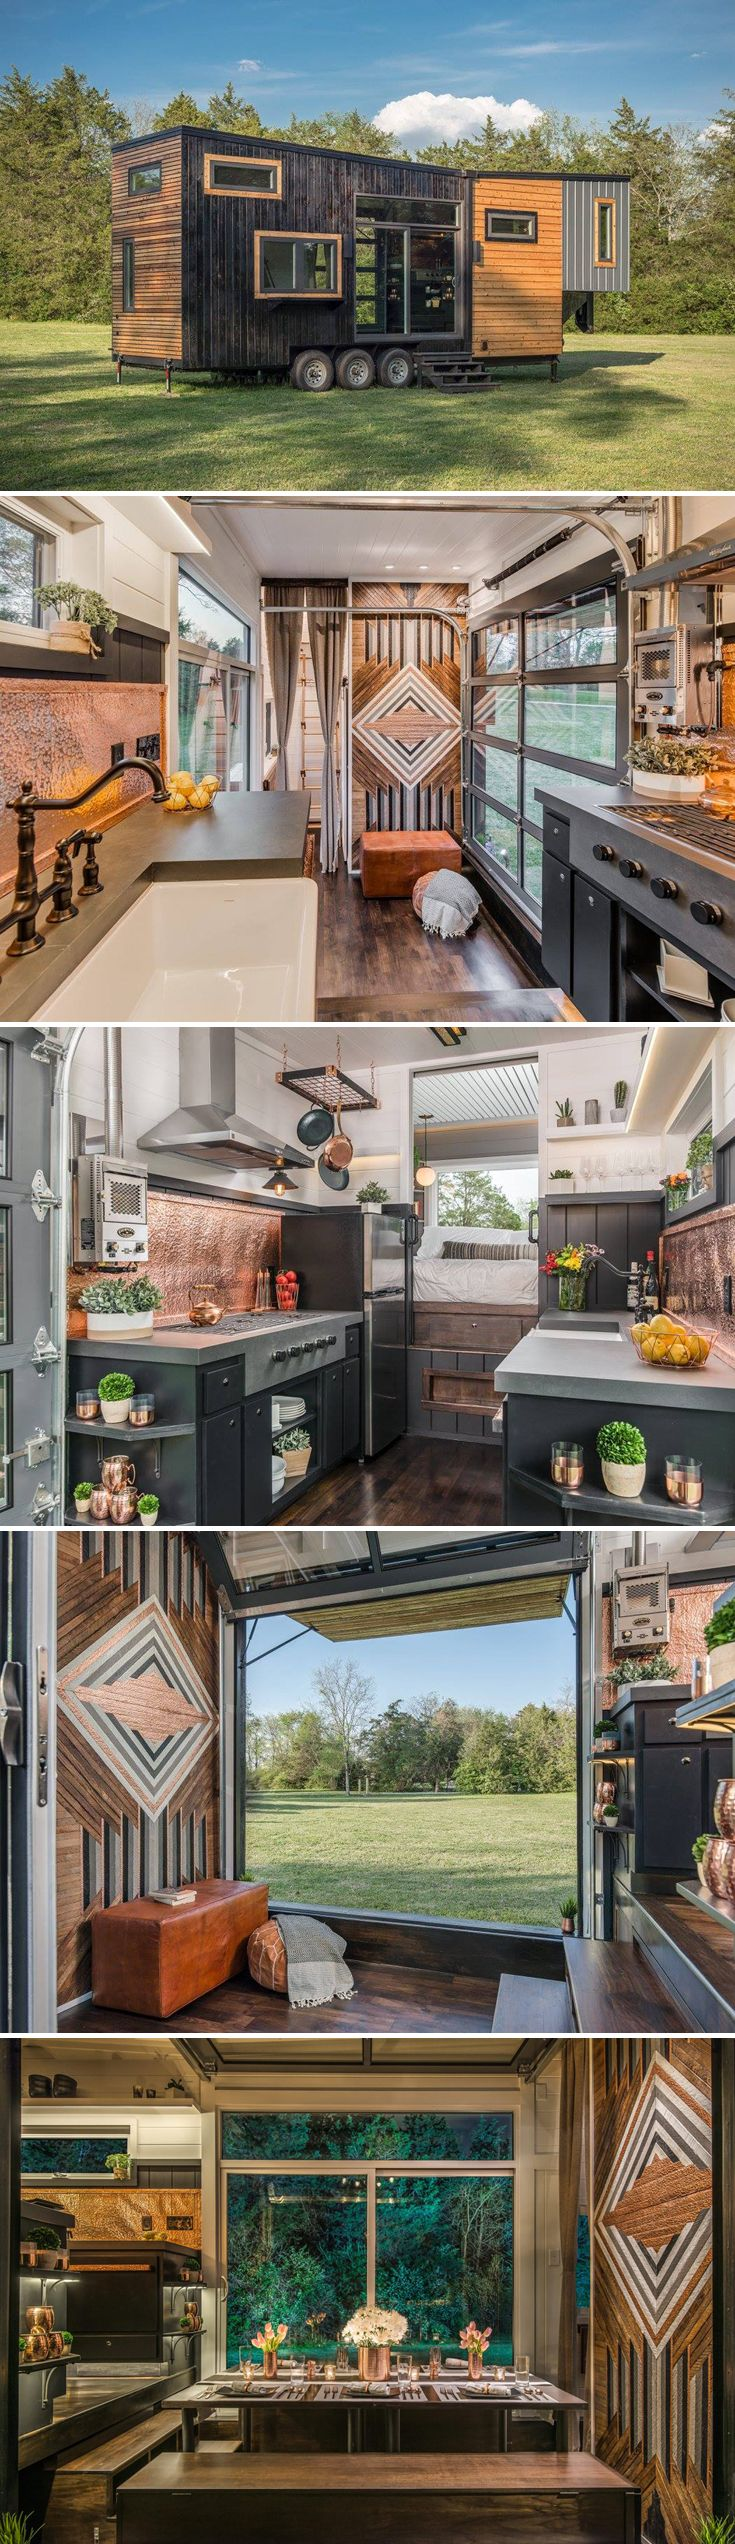 Escher By New Frontier Tiny Homes Tiny House Luxury